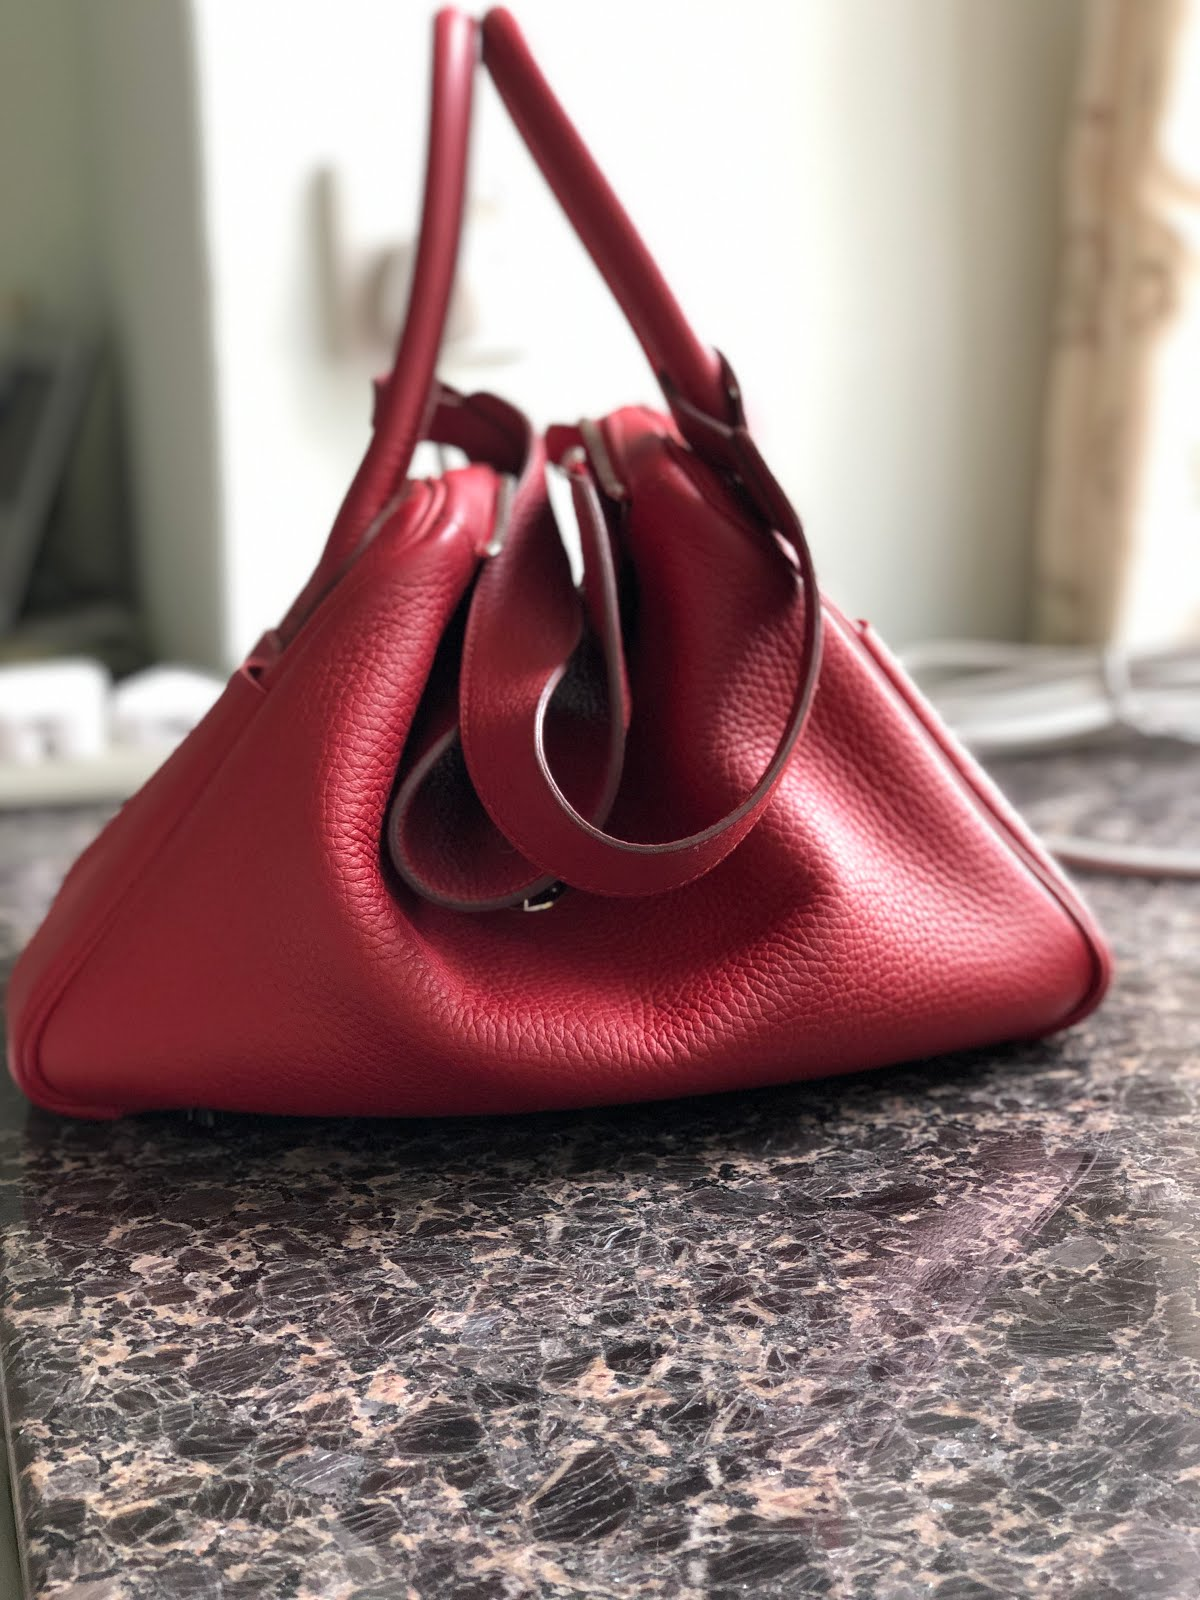 397faa3fdc5 Handbag Review - Lindy 30 Hermes (Clemence leather)